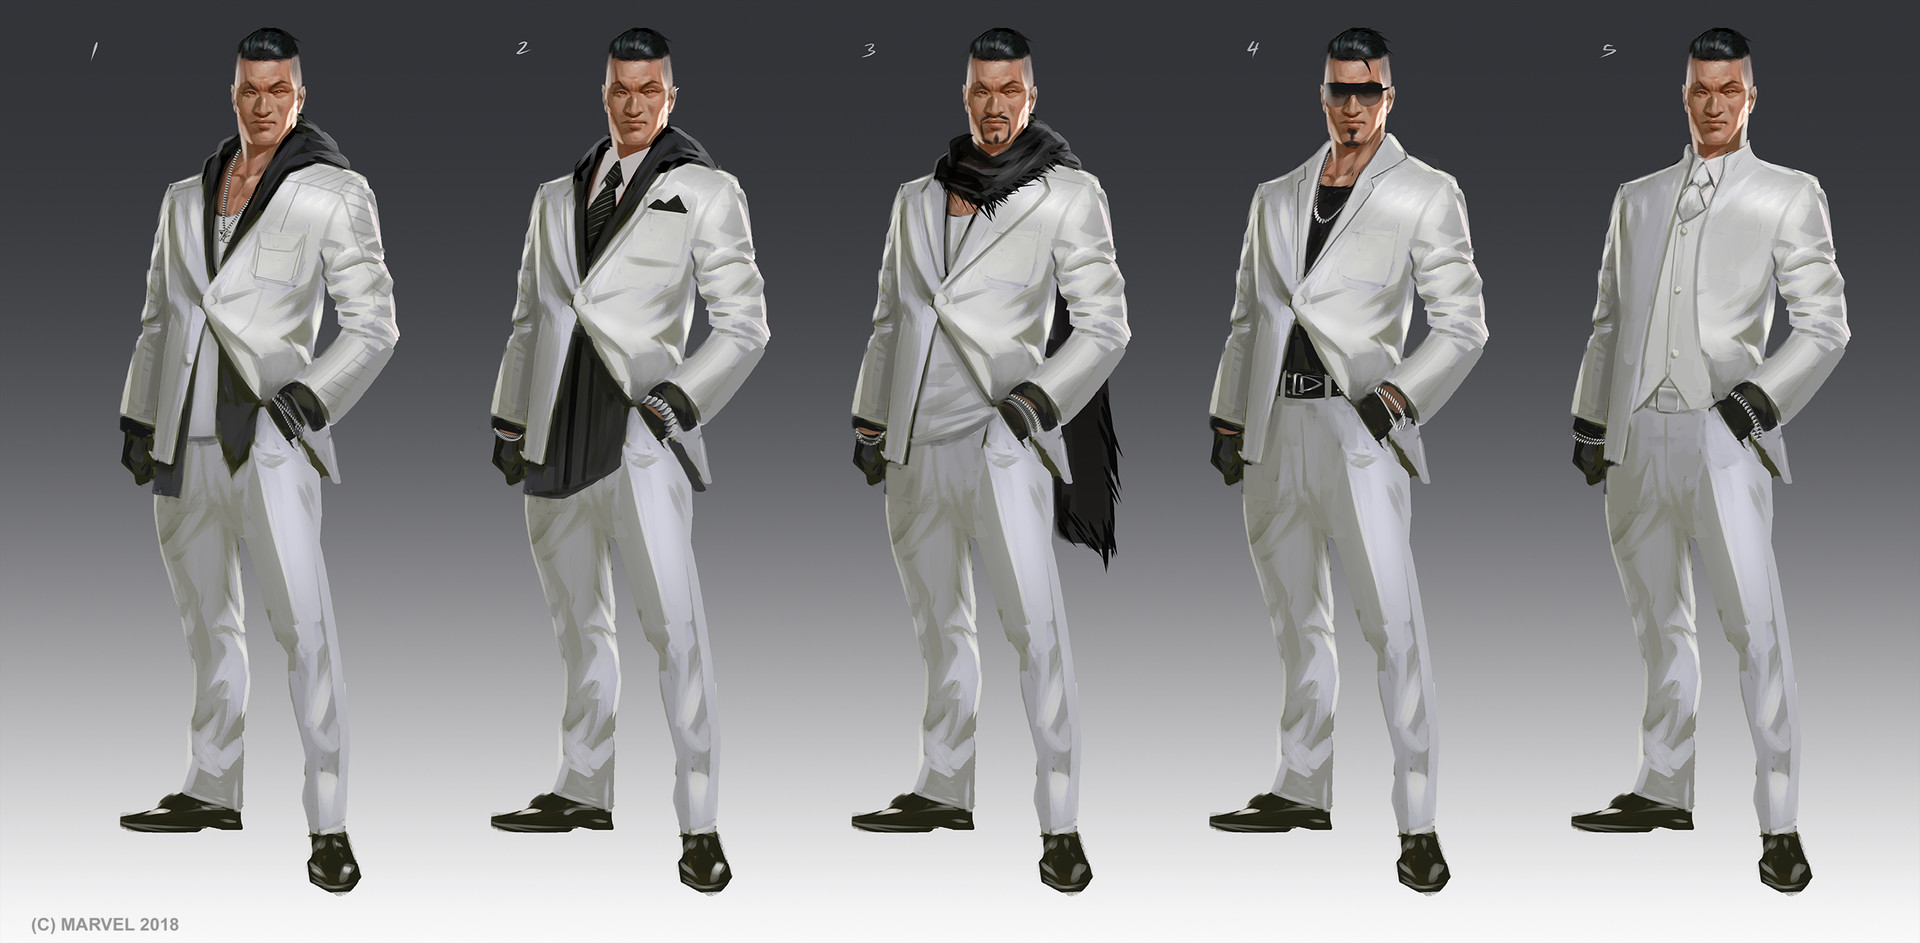 Daryl mandryk mr negative color sketches